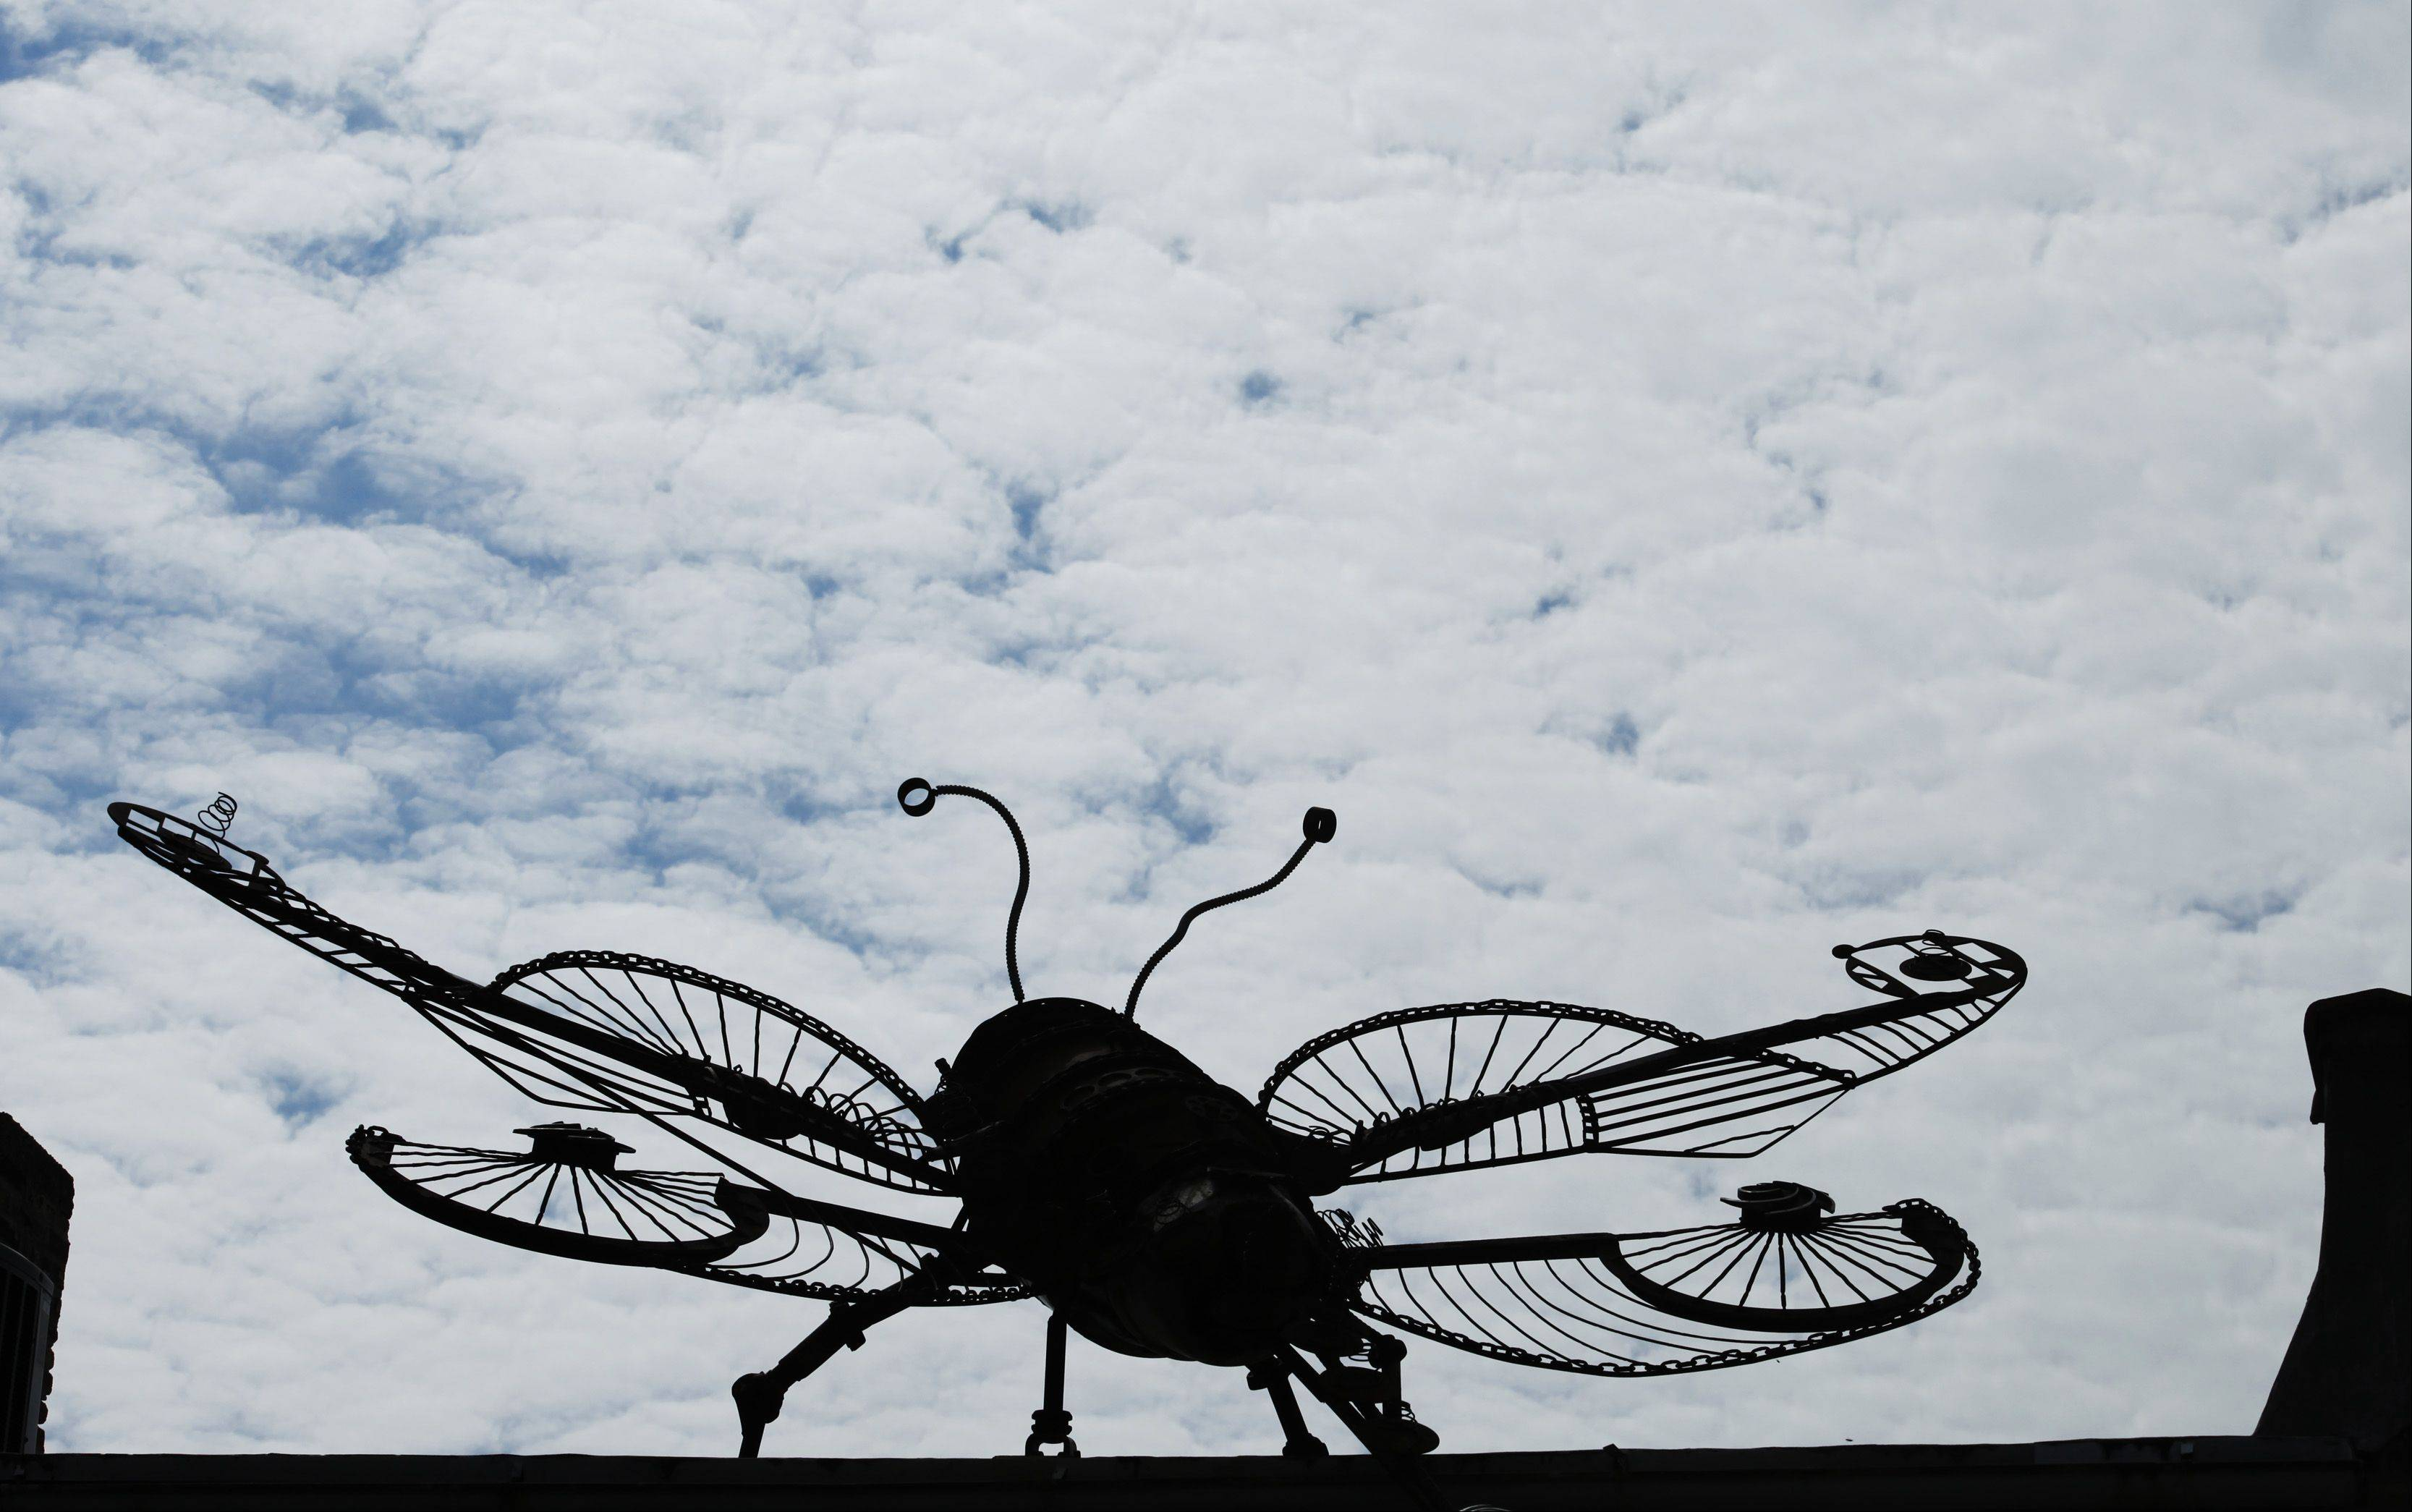 This giant metal sculpture of a bug caught my eye on a roof in downtown East Dundee recently. Either the owner of the building is a fan of insect art, or it's a display piece for a nearby art gallery. Either way, it looked like it was ready to take off into the clouds on the day I happened past. This photo was published in the weekly Perspective column of the print edition.